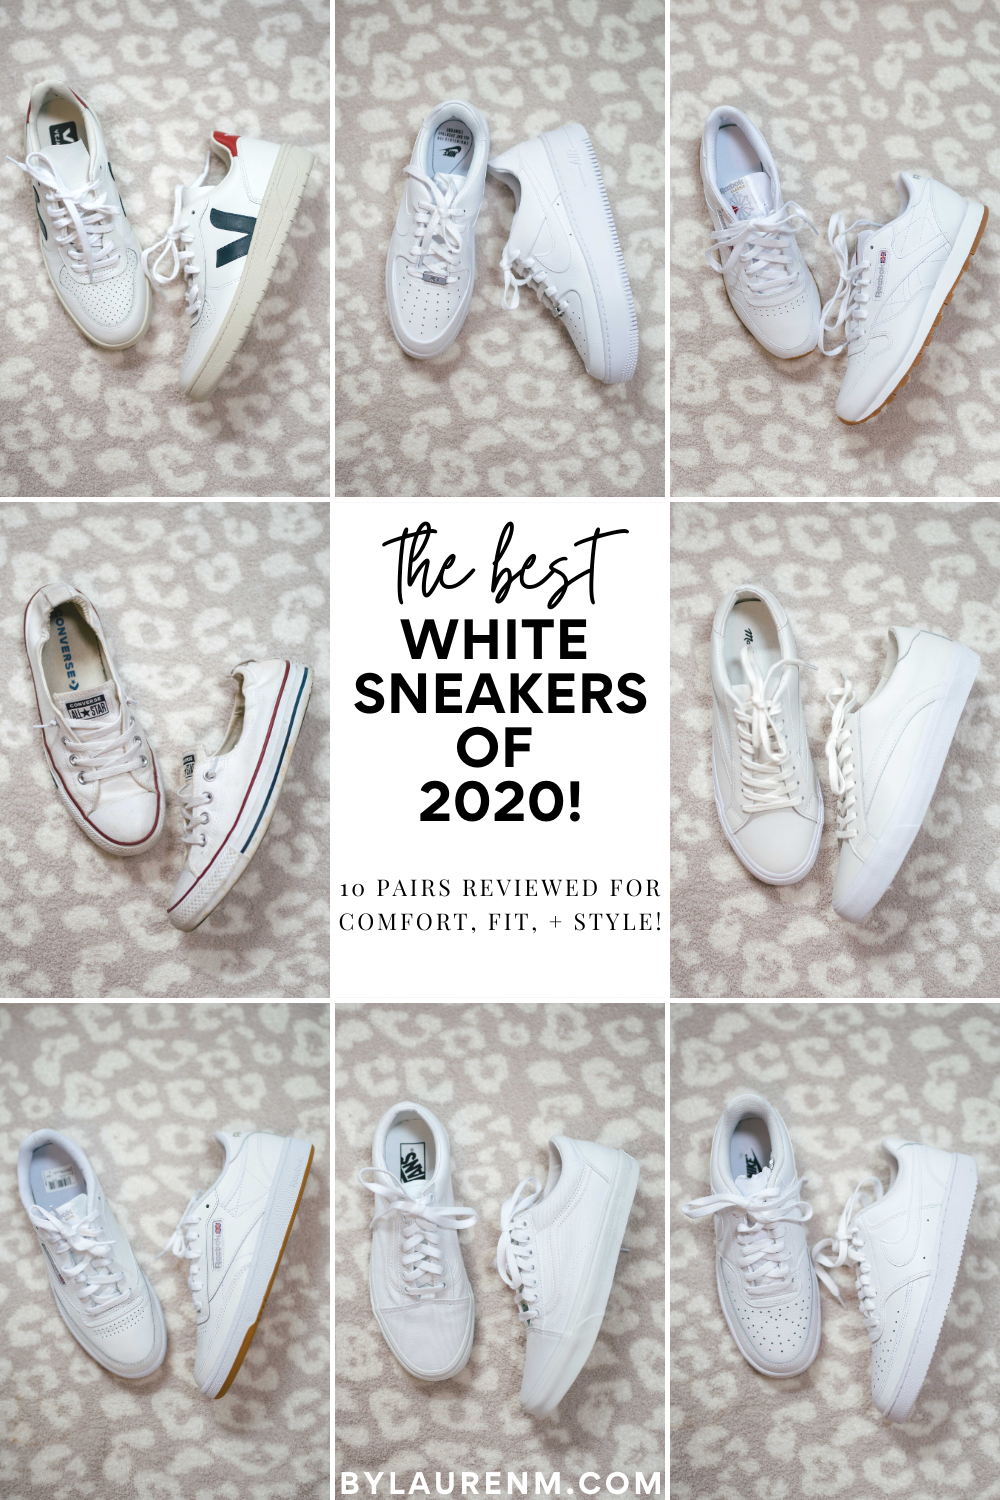 The BEST white sneakers! Lauren Dix reviewed 10 pairs of white sneakers for comfort, fit, and style!